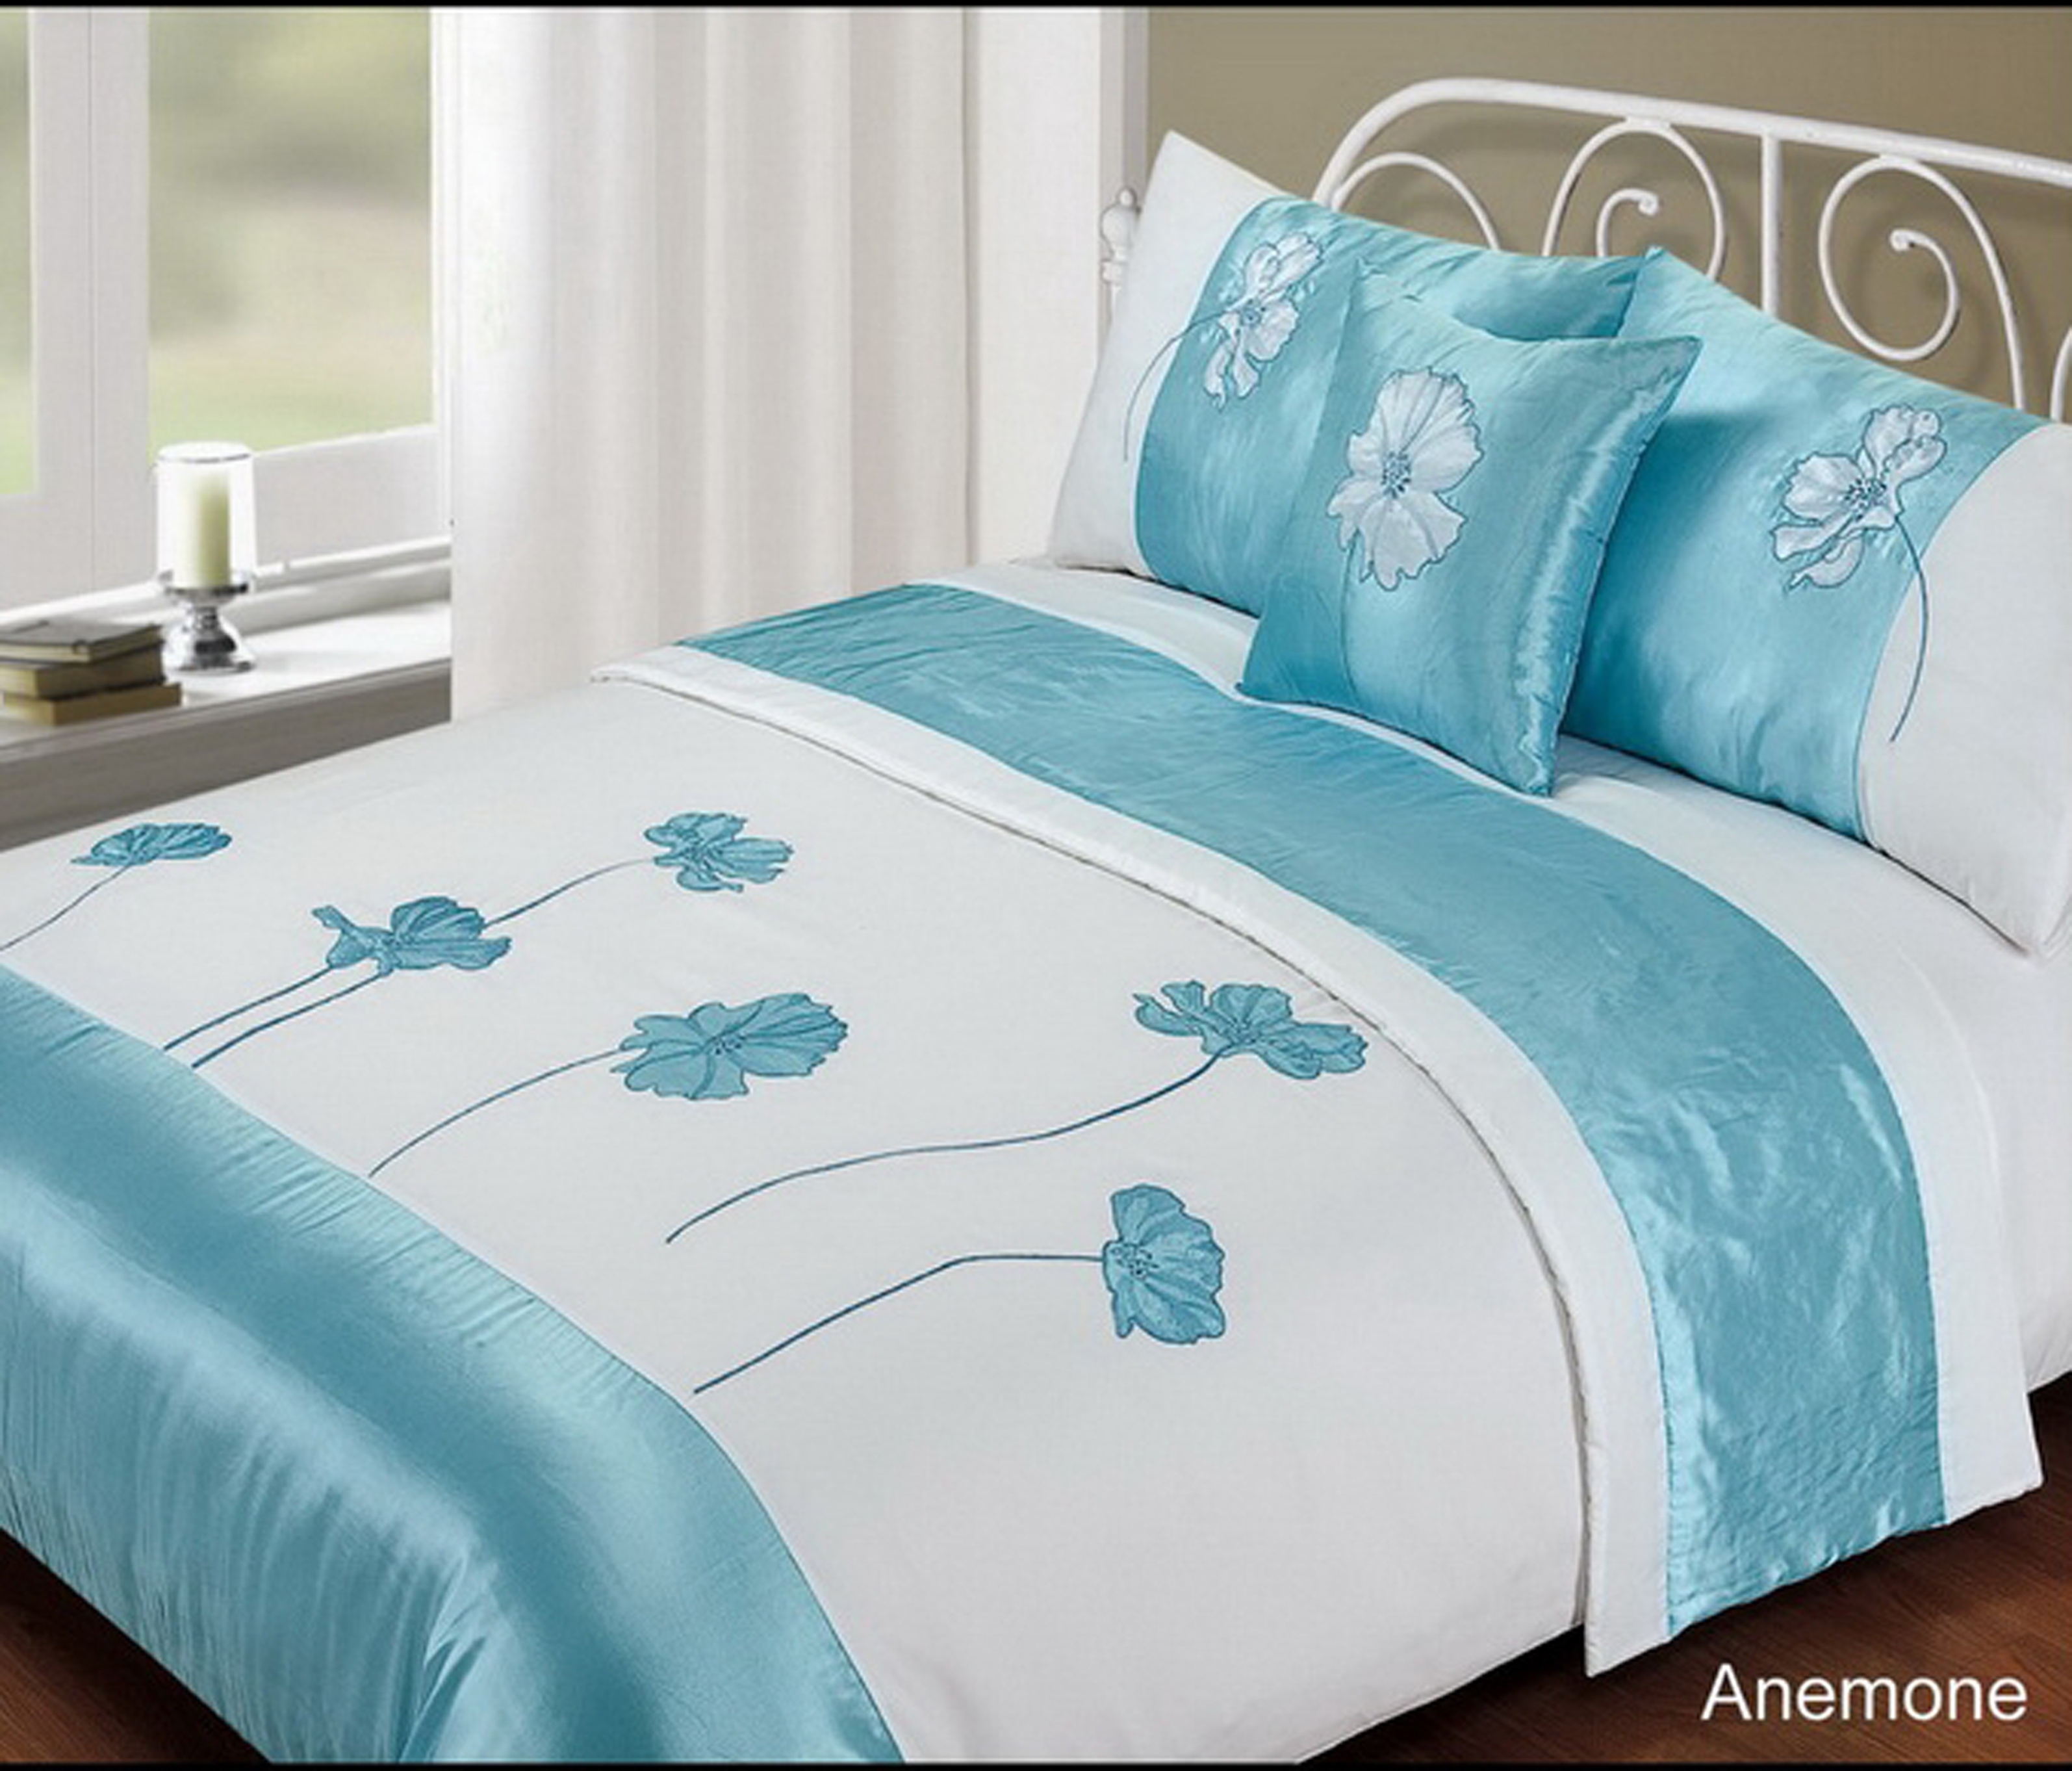 a mainstays coordinating bag walmart ip com fishing gone set in efdf king bed bedding